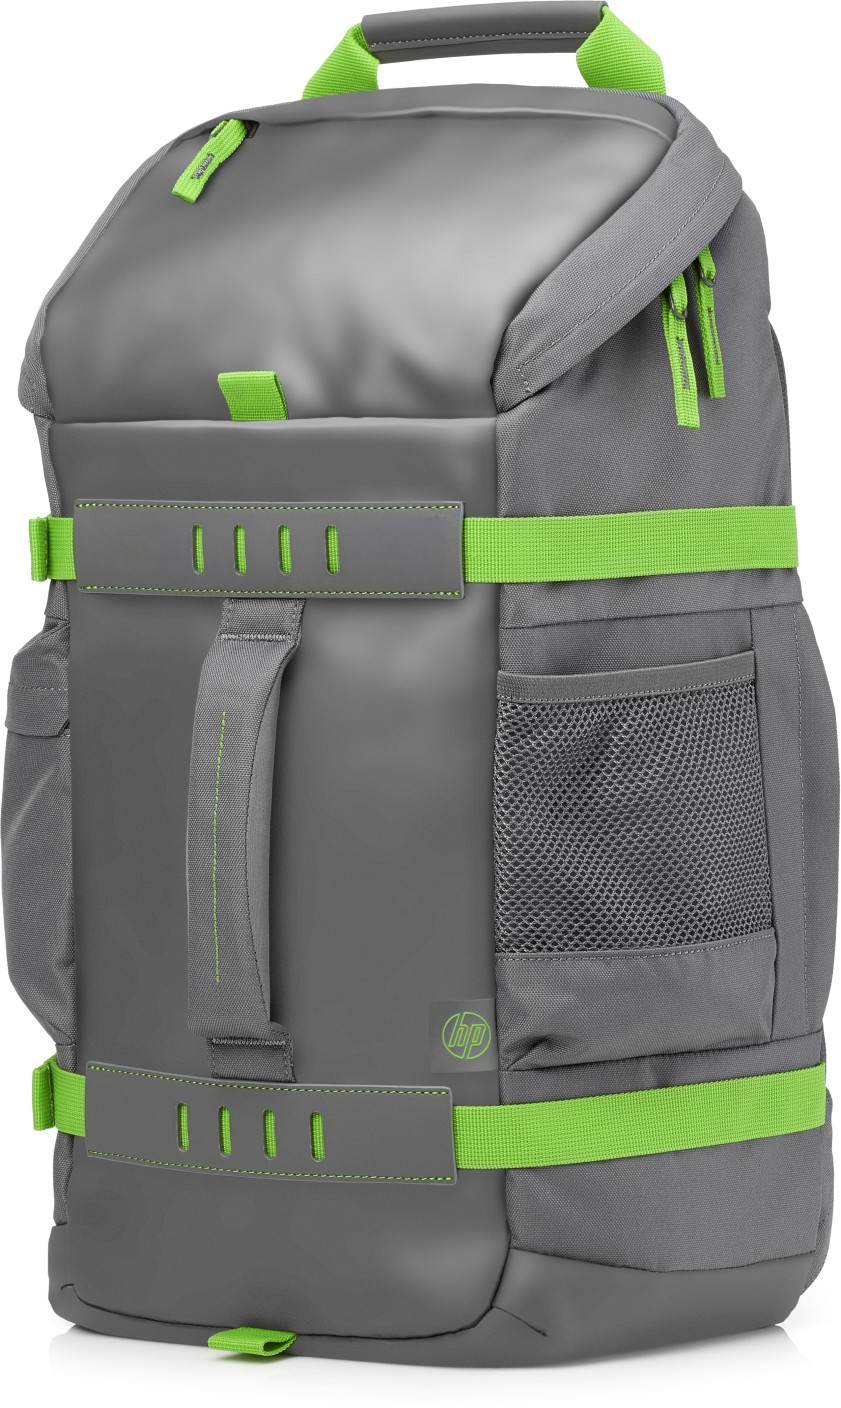 How To Make Backpack Straps More Comfortablehp 15 6 Inch Laptop Fjallraven Kanken 15ampquot Black Hp Grey Green Price In India